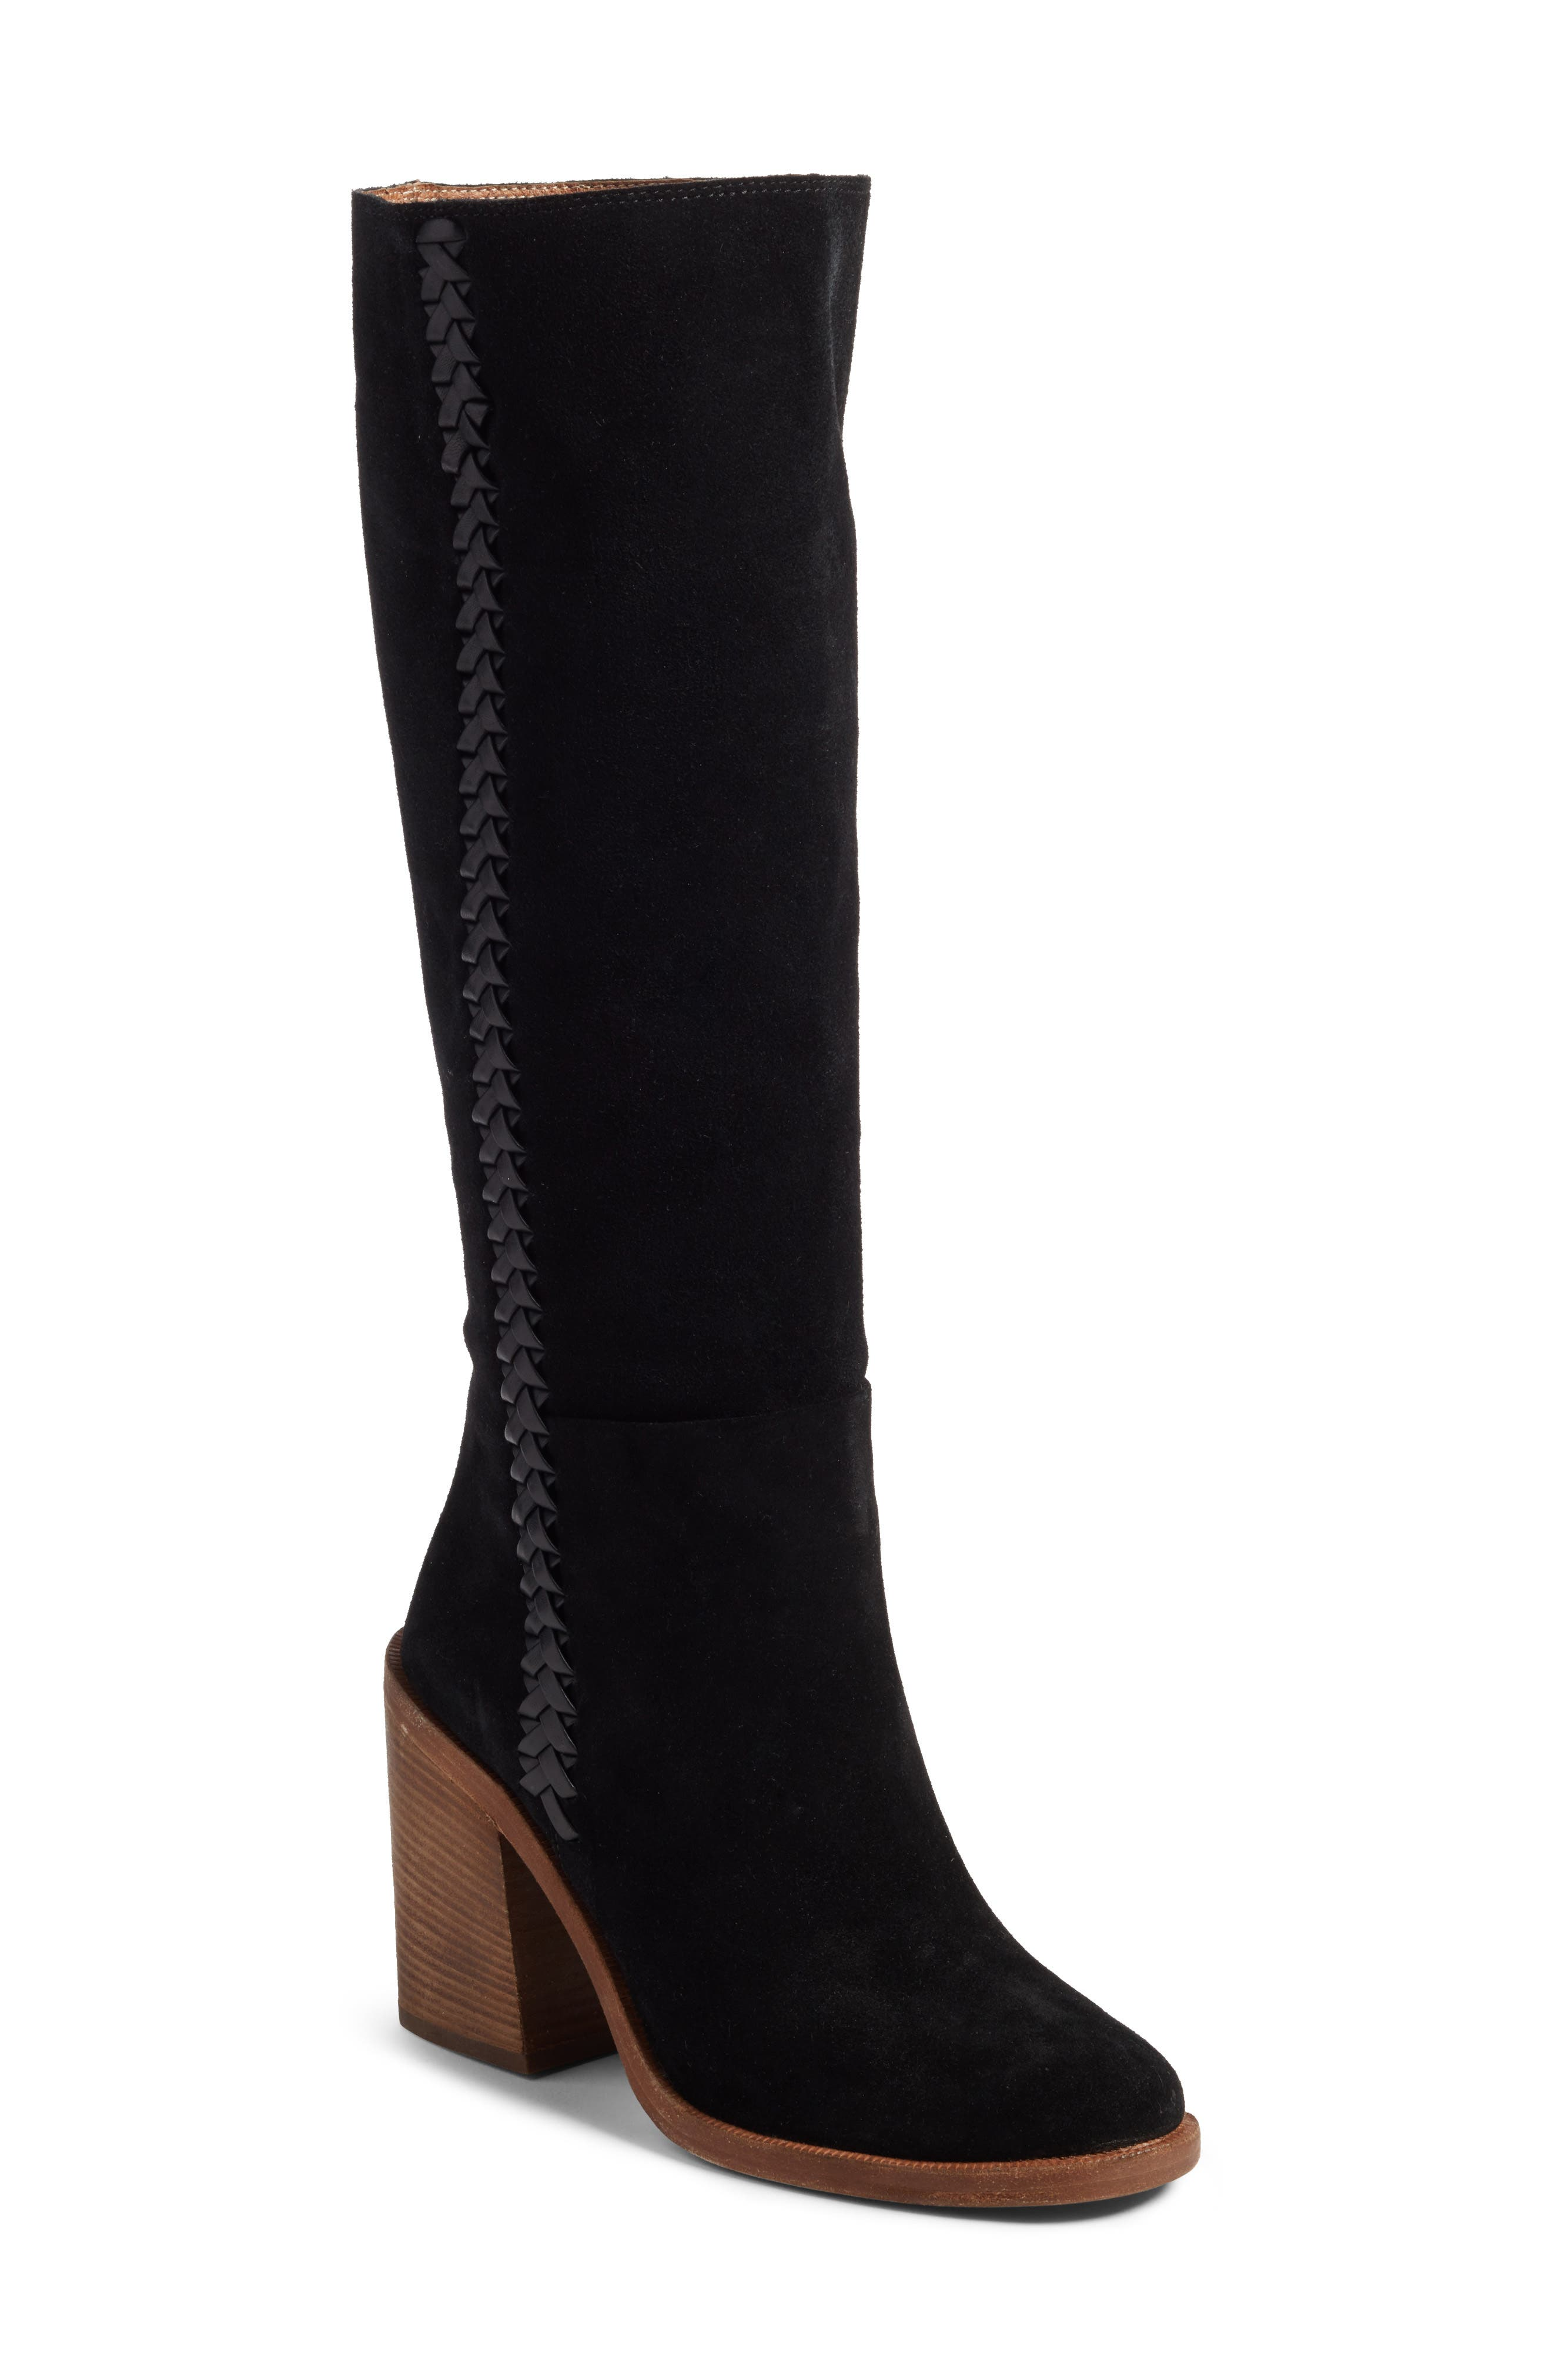 Alternate Image 1 Selected - UGG® Maeva Knee High Boot (Women)